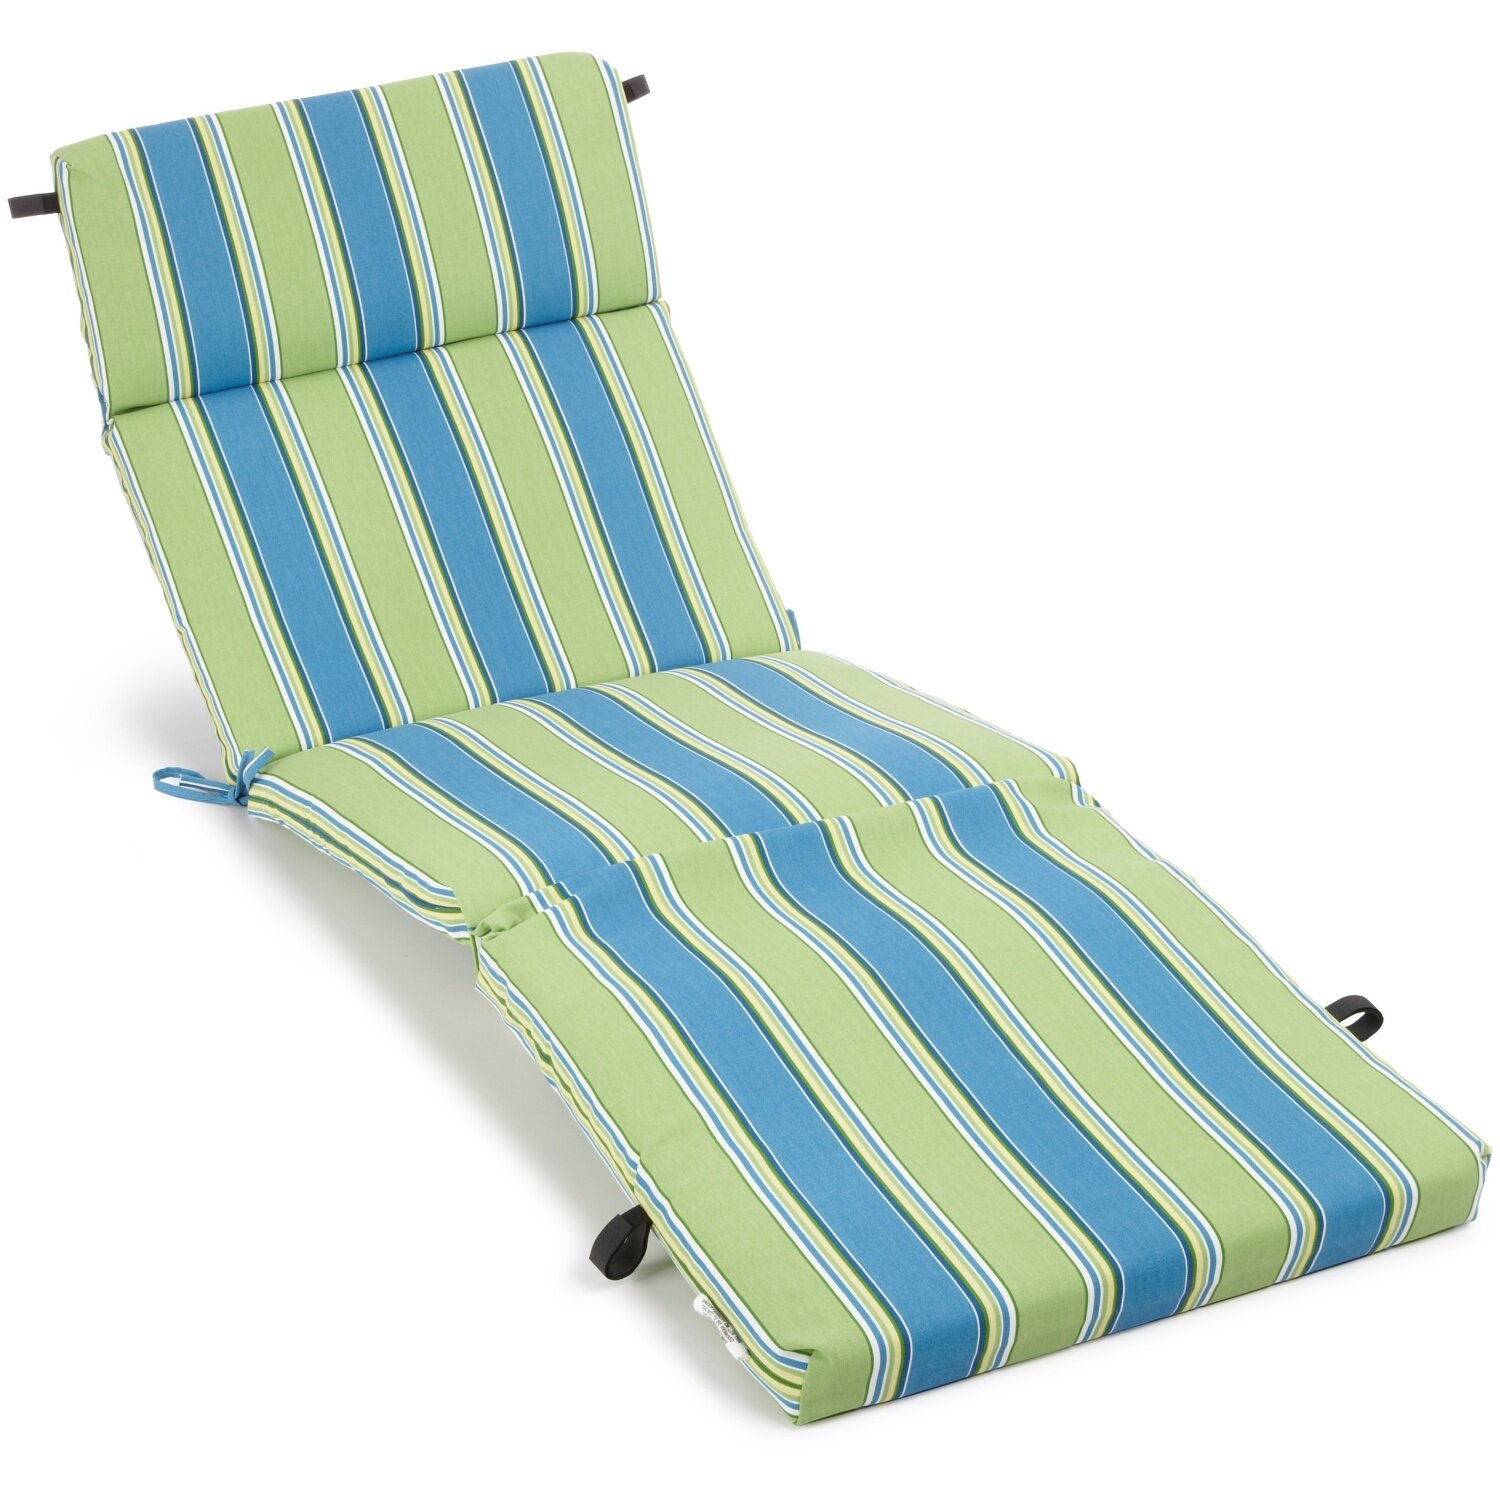 Blazing needles haliwall outdoor chaise lounge cushion for Blazing needles chaise cushion